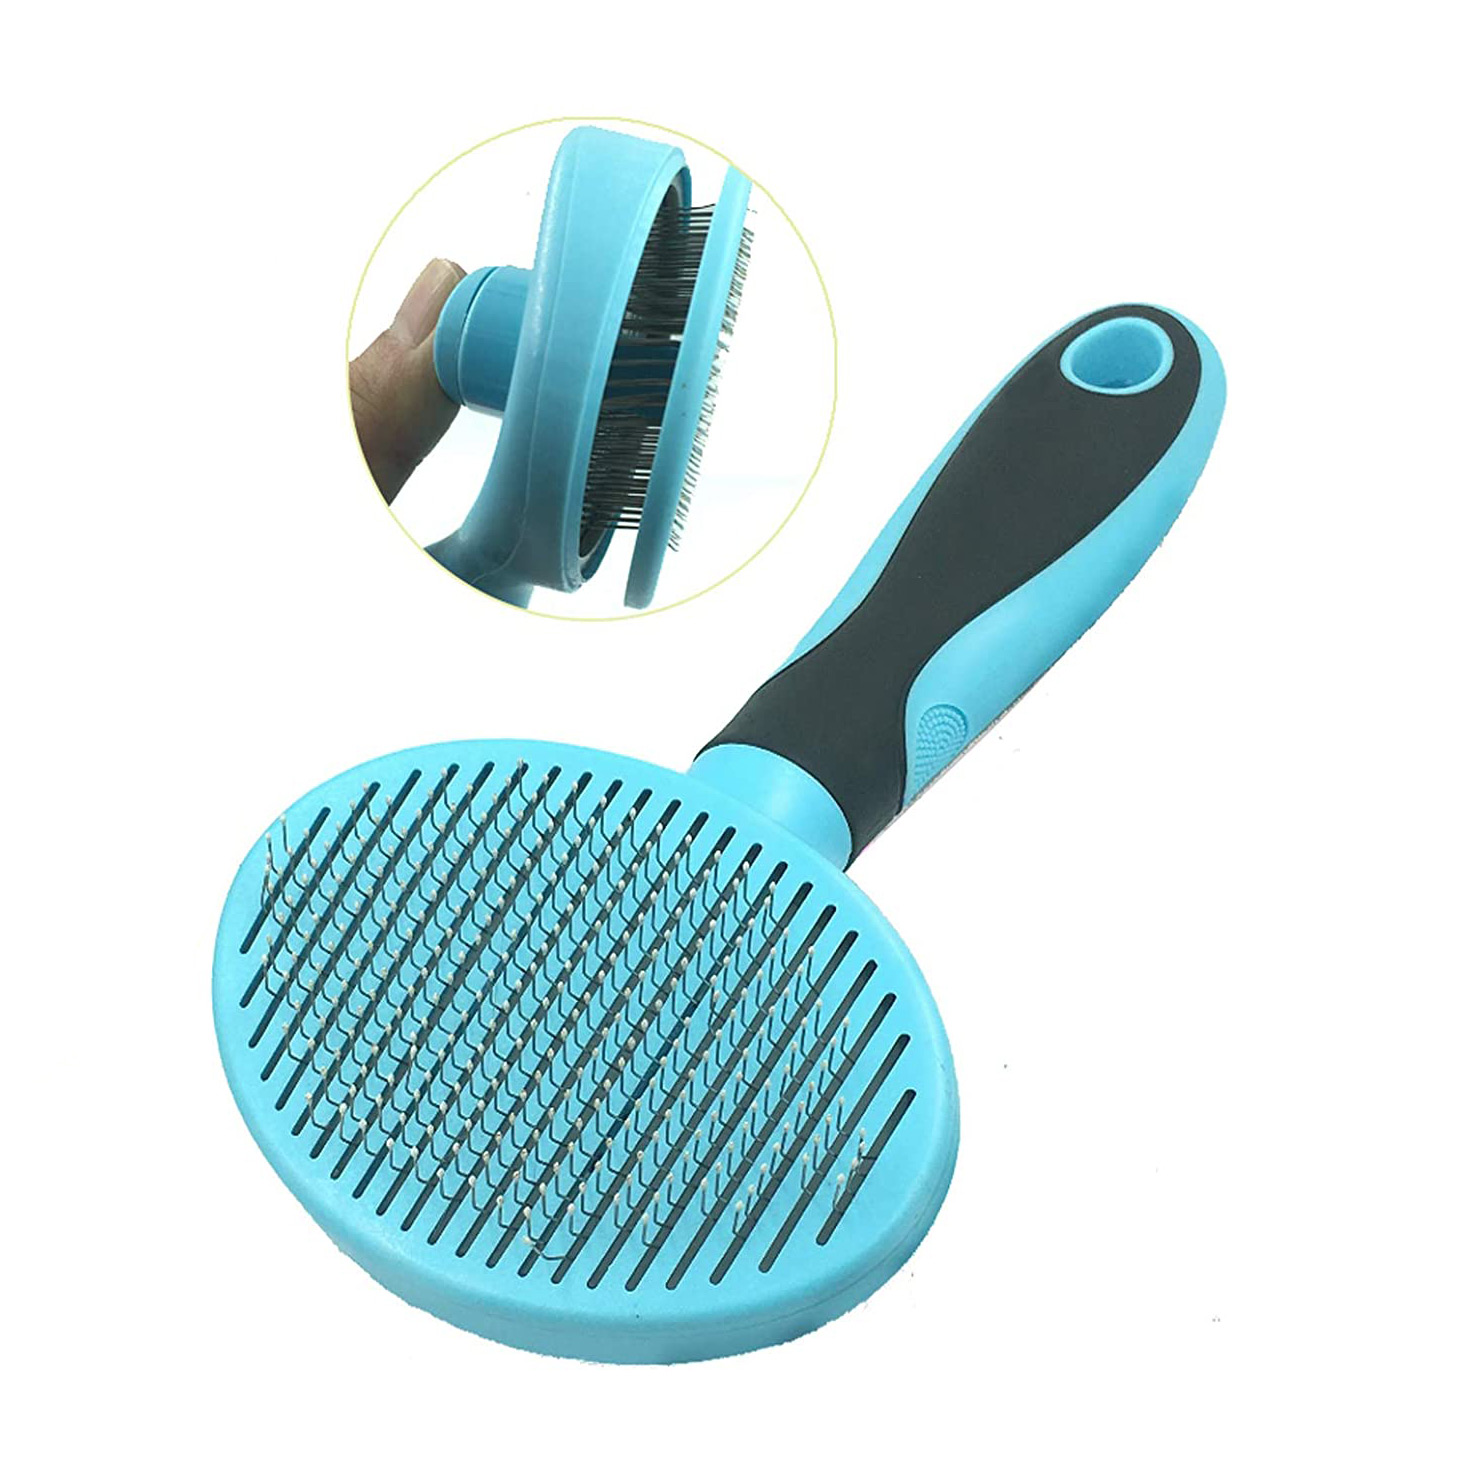 hesiry-cat-brush-for-shedding